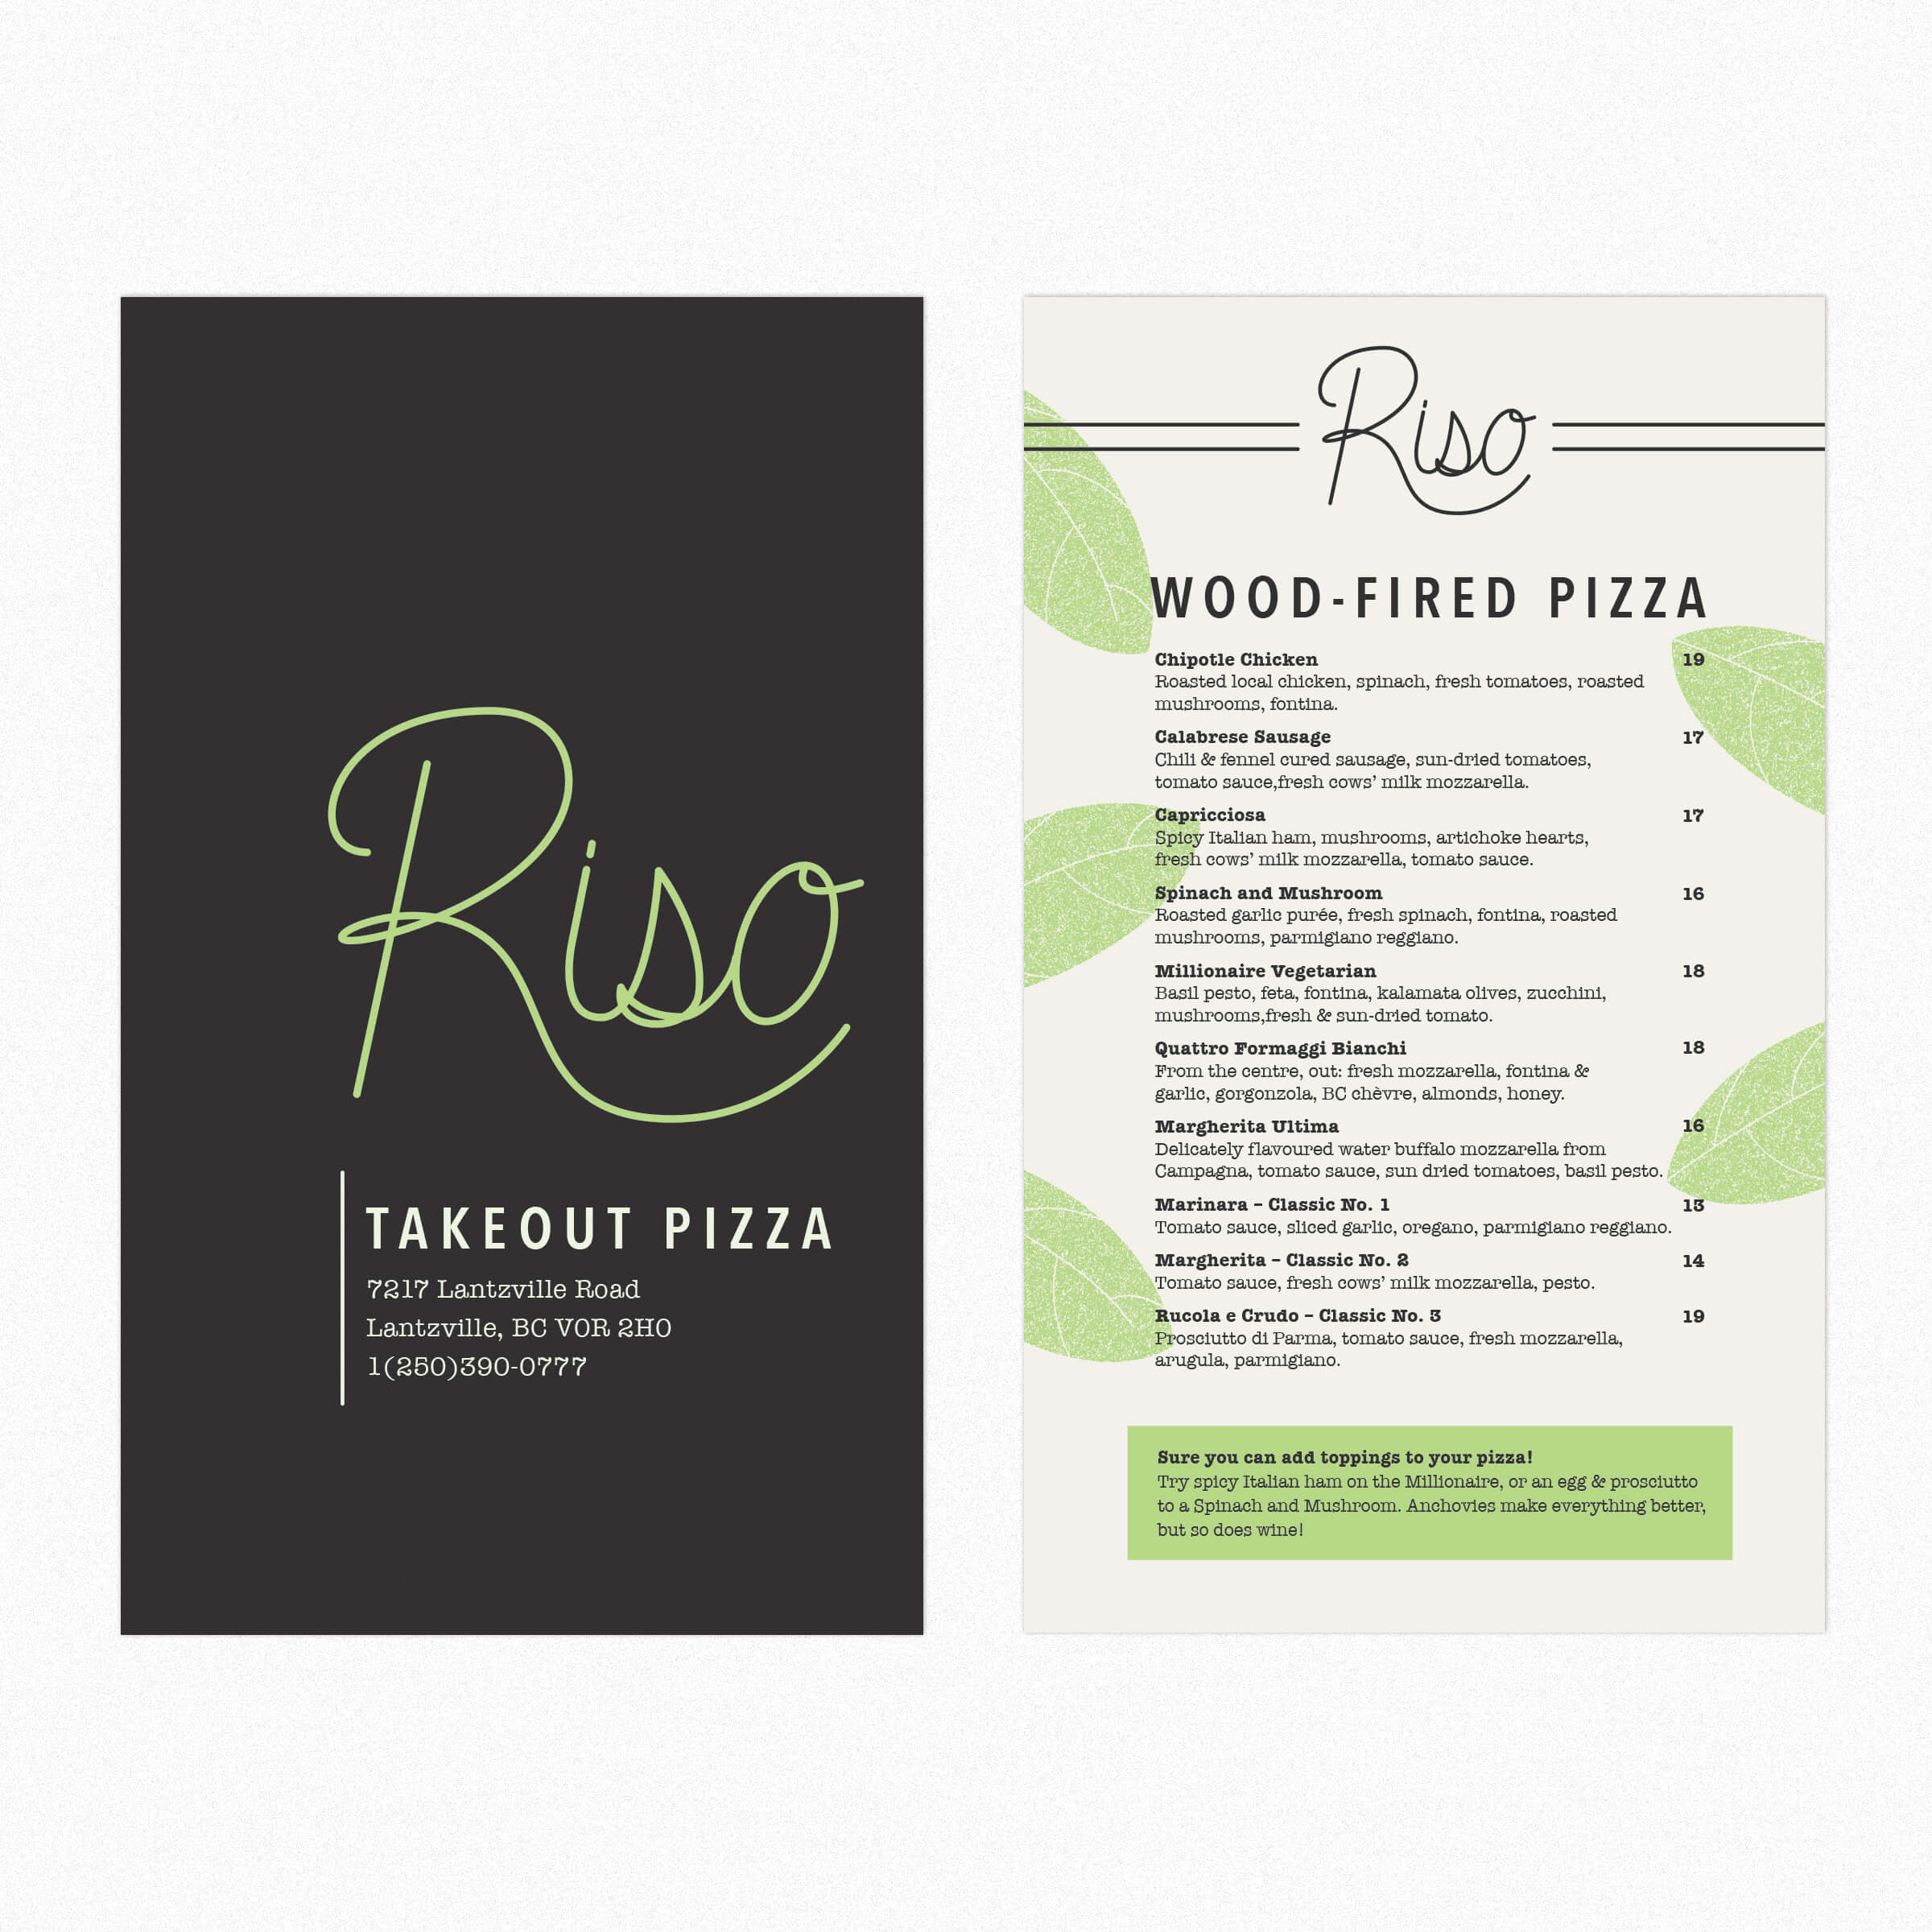 Riso Foods Inc. Pizza Takeout Menu